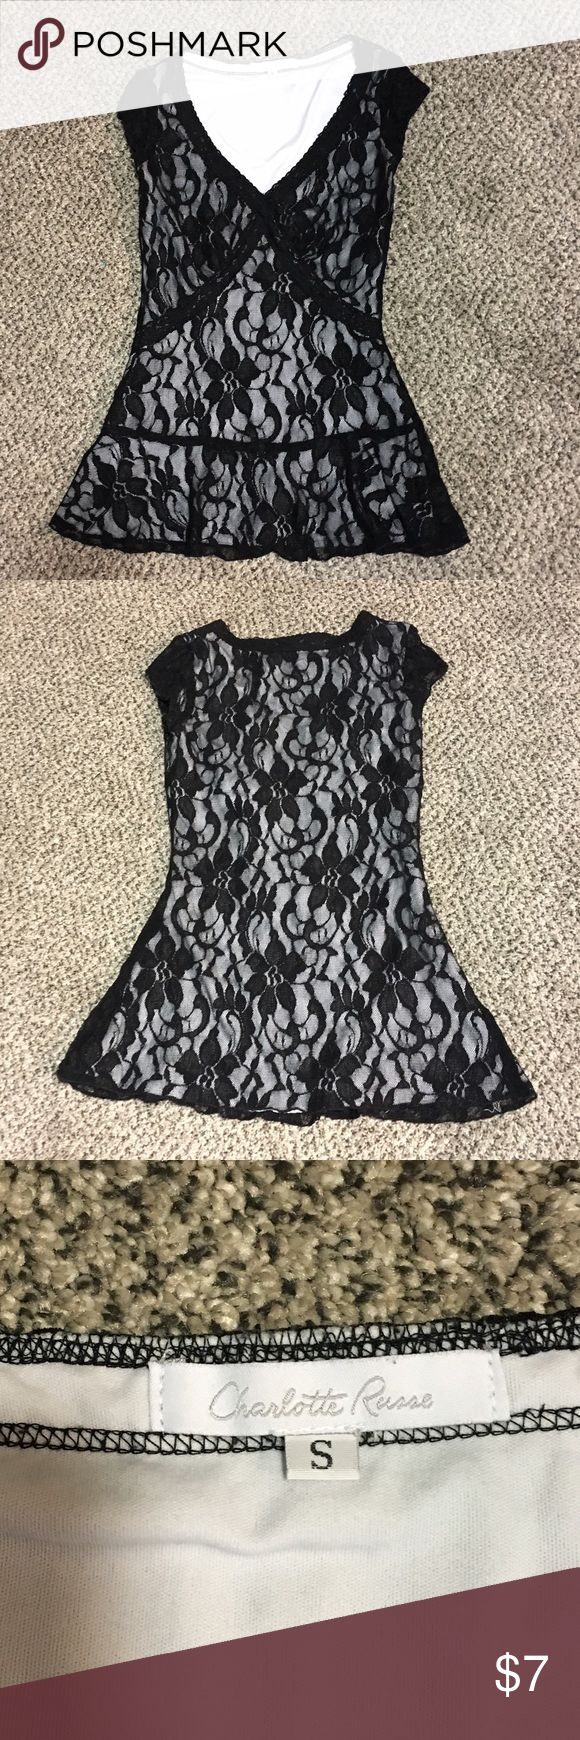 Lace black and white blouse Semi used black and white charlotte ruse V-neck blouse in excellent condition Charlotte Russe Tops Blouses